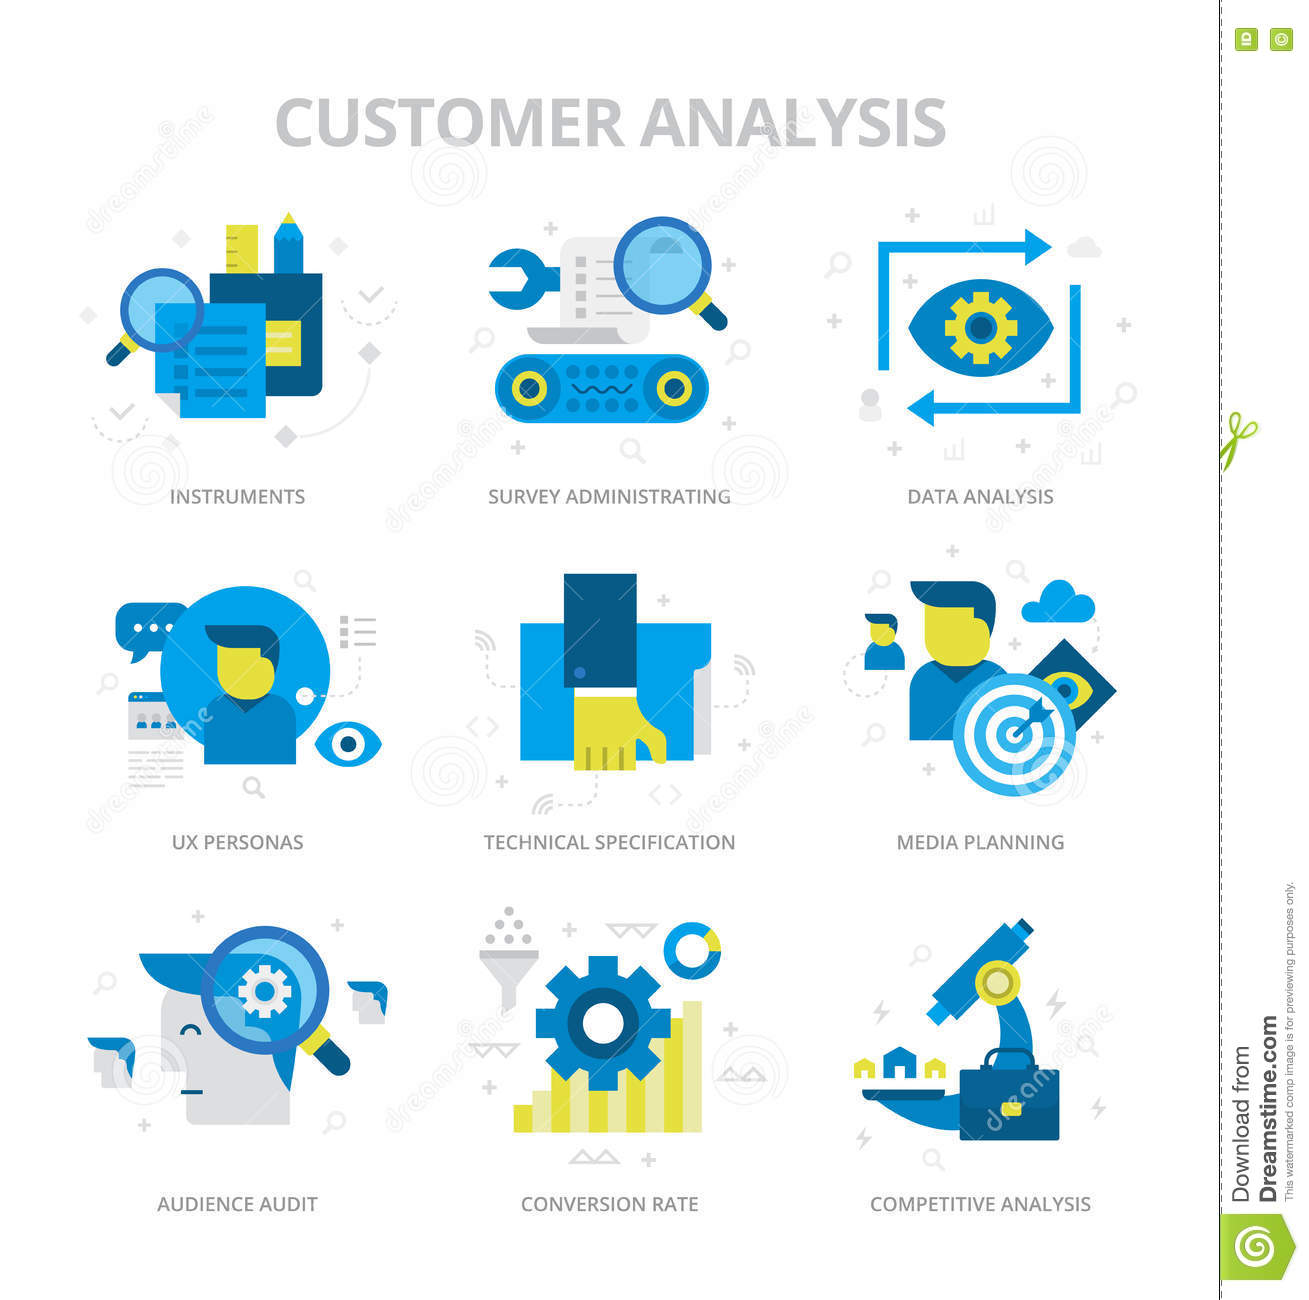 an analysis of business to consumer An overview of selected marketing segmentation approaches: factor segmentation, k-means clustering, twostep cluster analysis, and latent class cluster analysis.